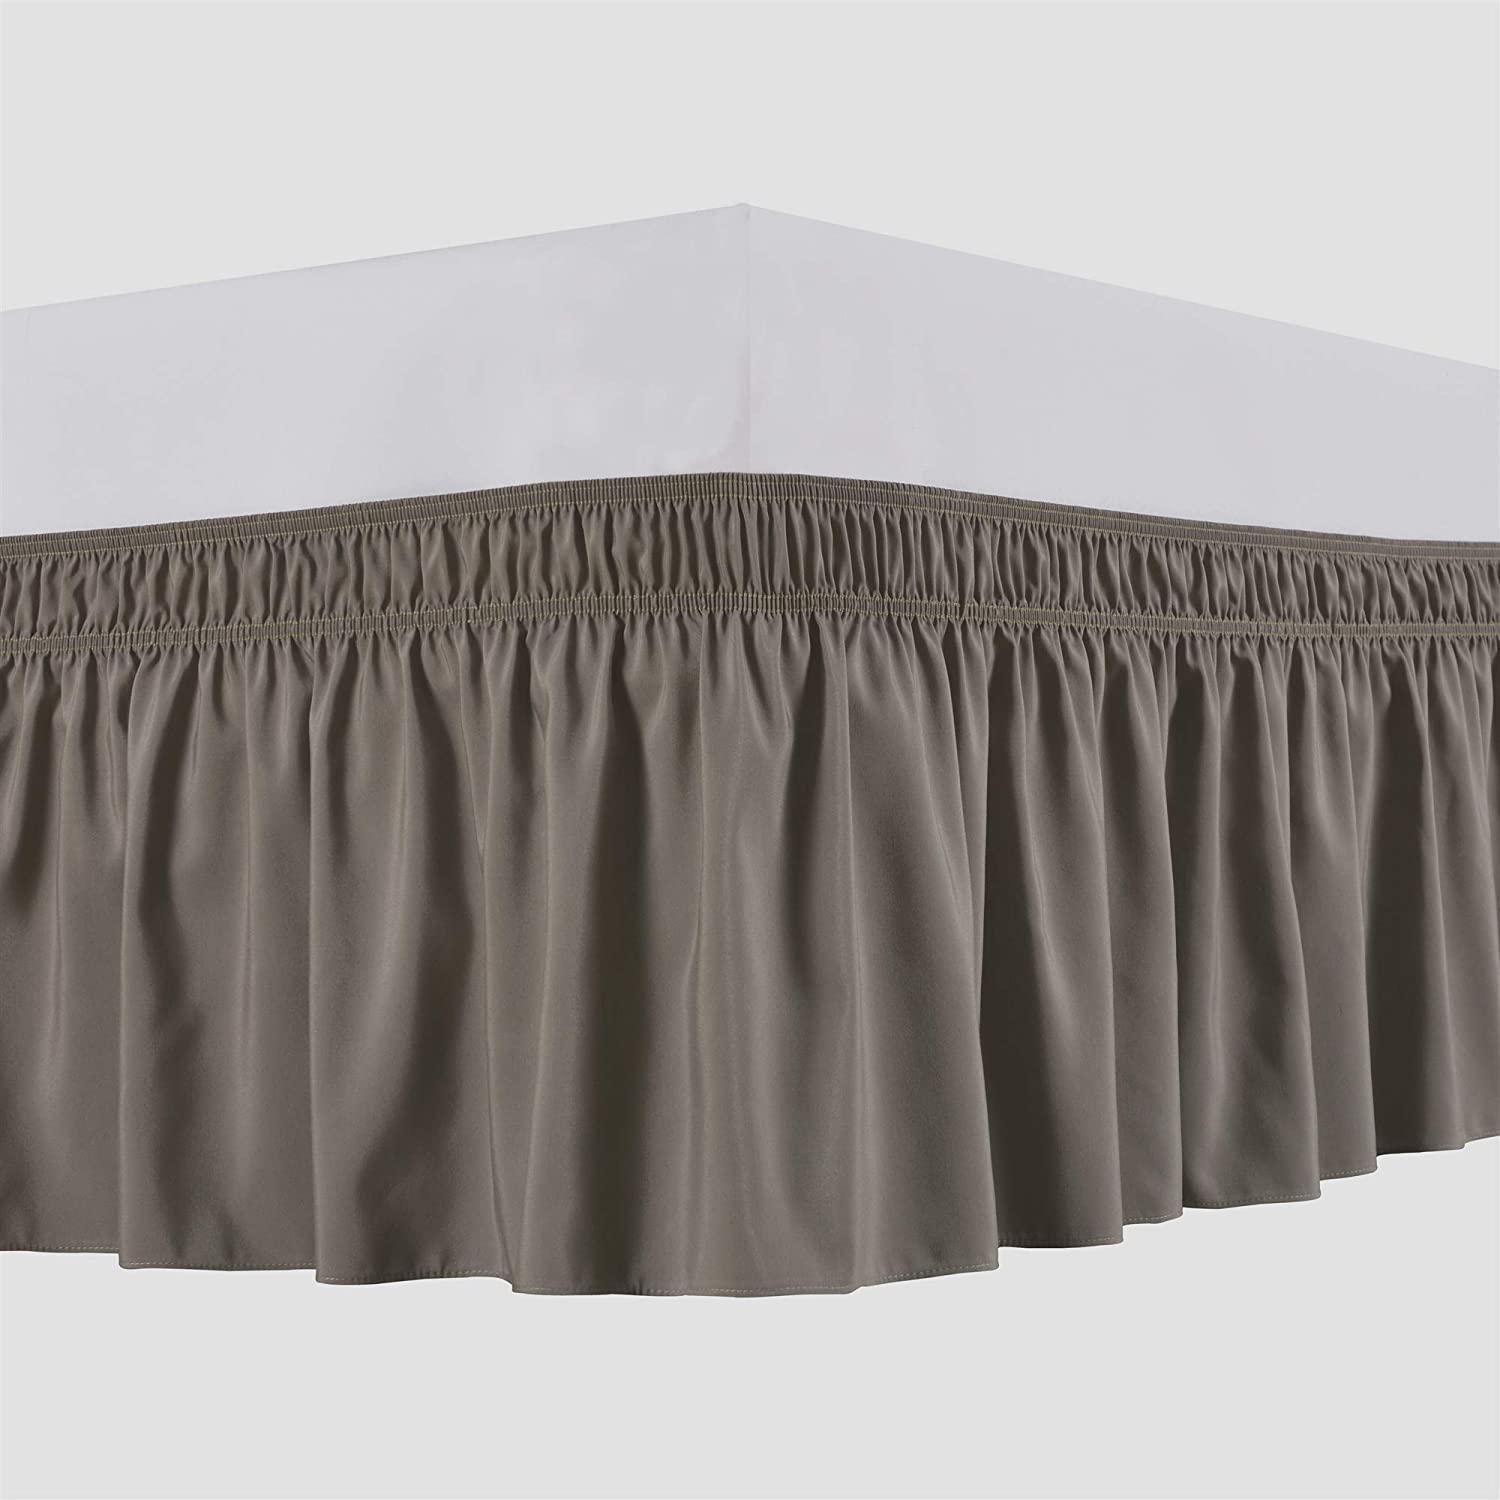 Biscaynebay Wrap Around Bed Skirts Elastic Dust Ruffles, Easy Fit Wrinkle and Fade Resistant Silky Luxrious Fabric Solid Color, Taupe for King and California King Size Beds 15 Inches Drop